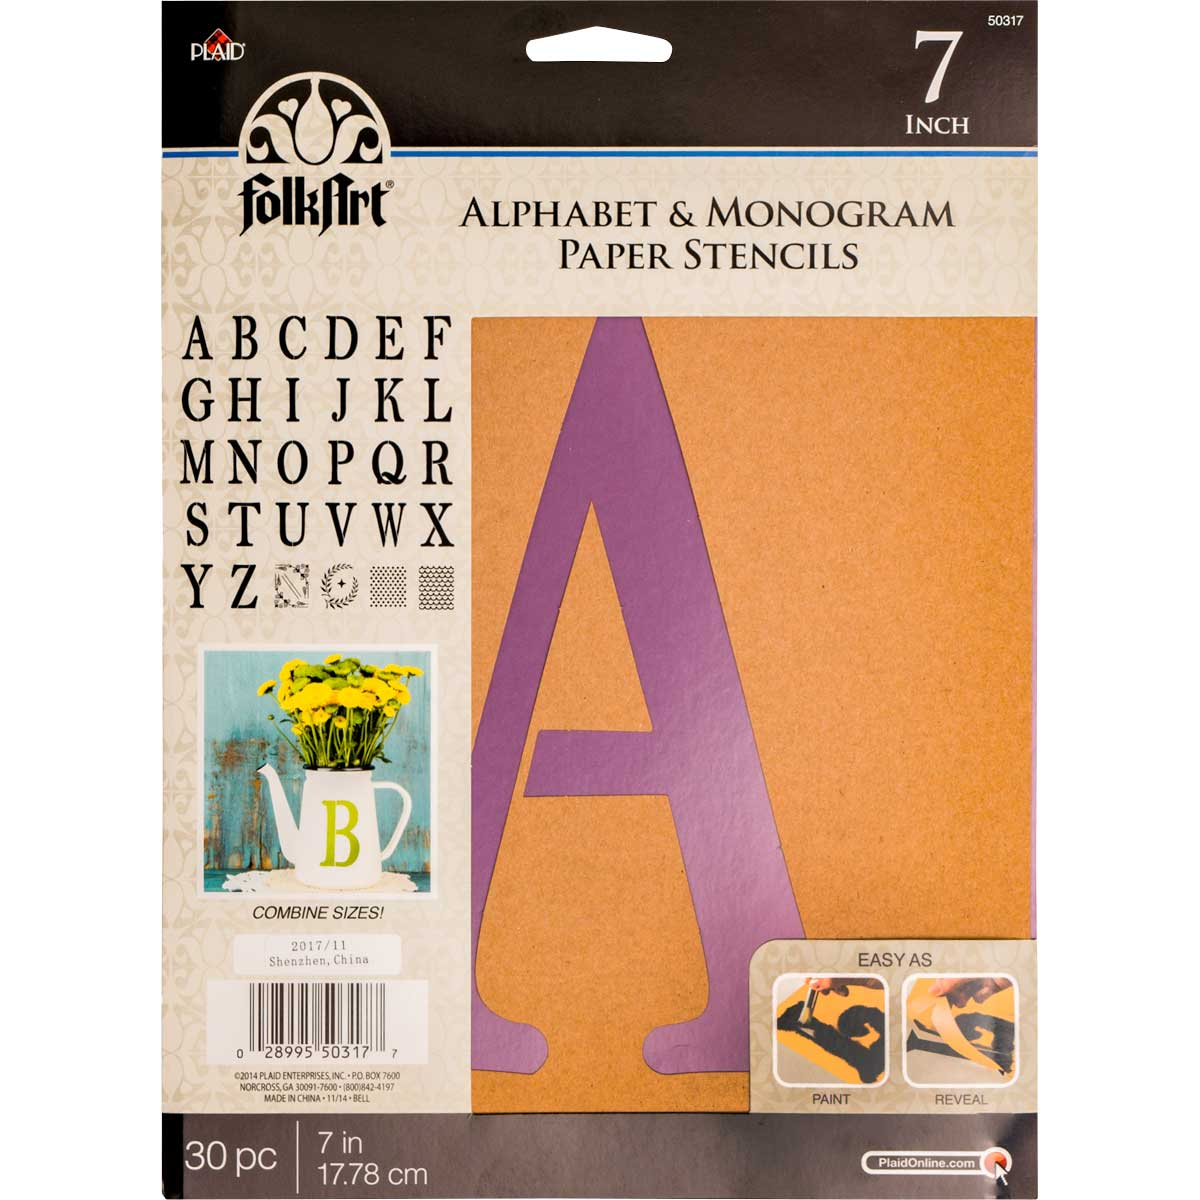 Plaid Folkart Stencil Paper, Alphabet & Monogram Serif 7 Inches